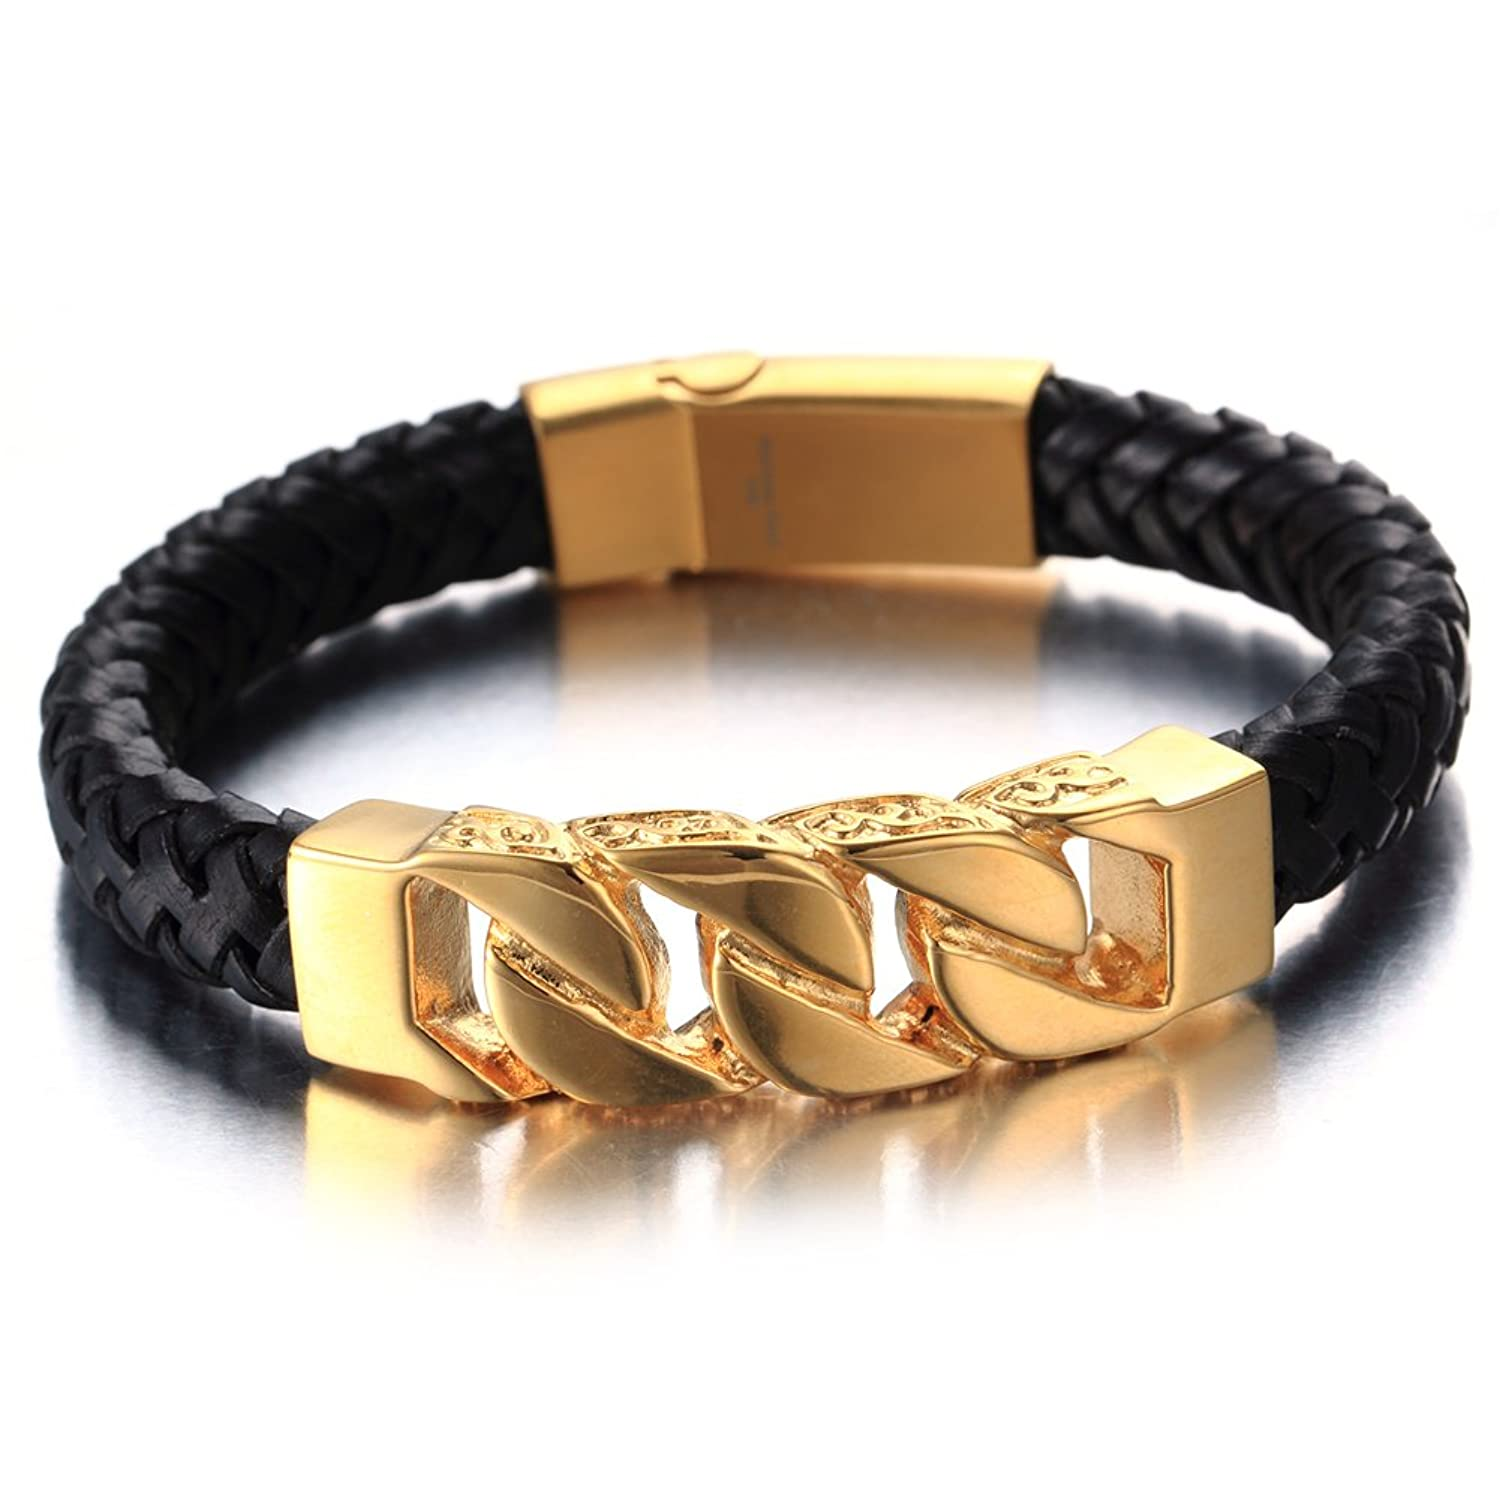 d260f71cc51 Minimalist Black Gold Braided Leather Bracelet Mens Womens Curb Cuban  Genuine Leather Bangle Wristband